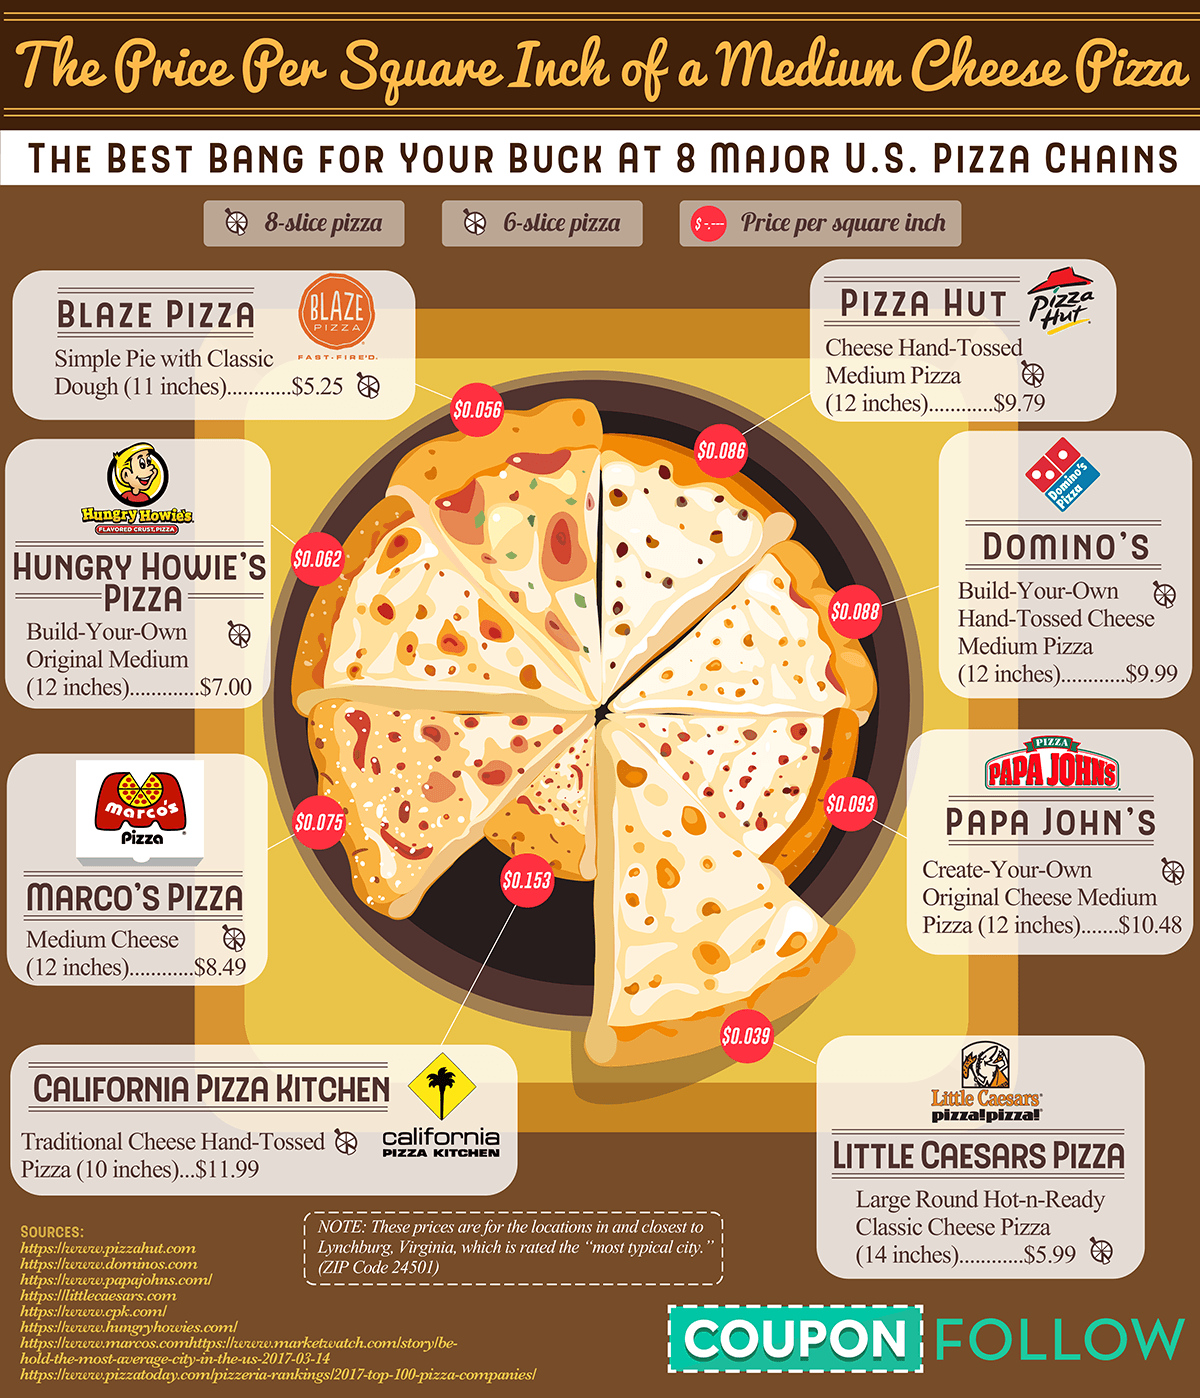 These Pizza Chains Are Where You Can Get The Best Bang For Your Buck #Infographic